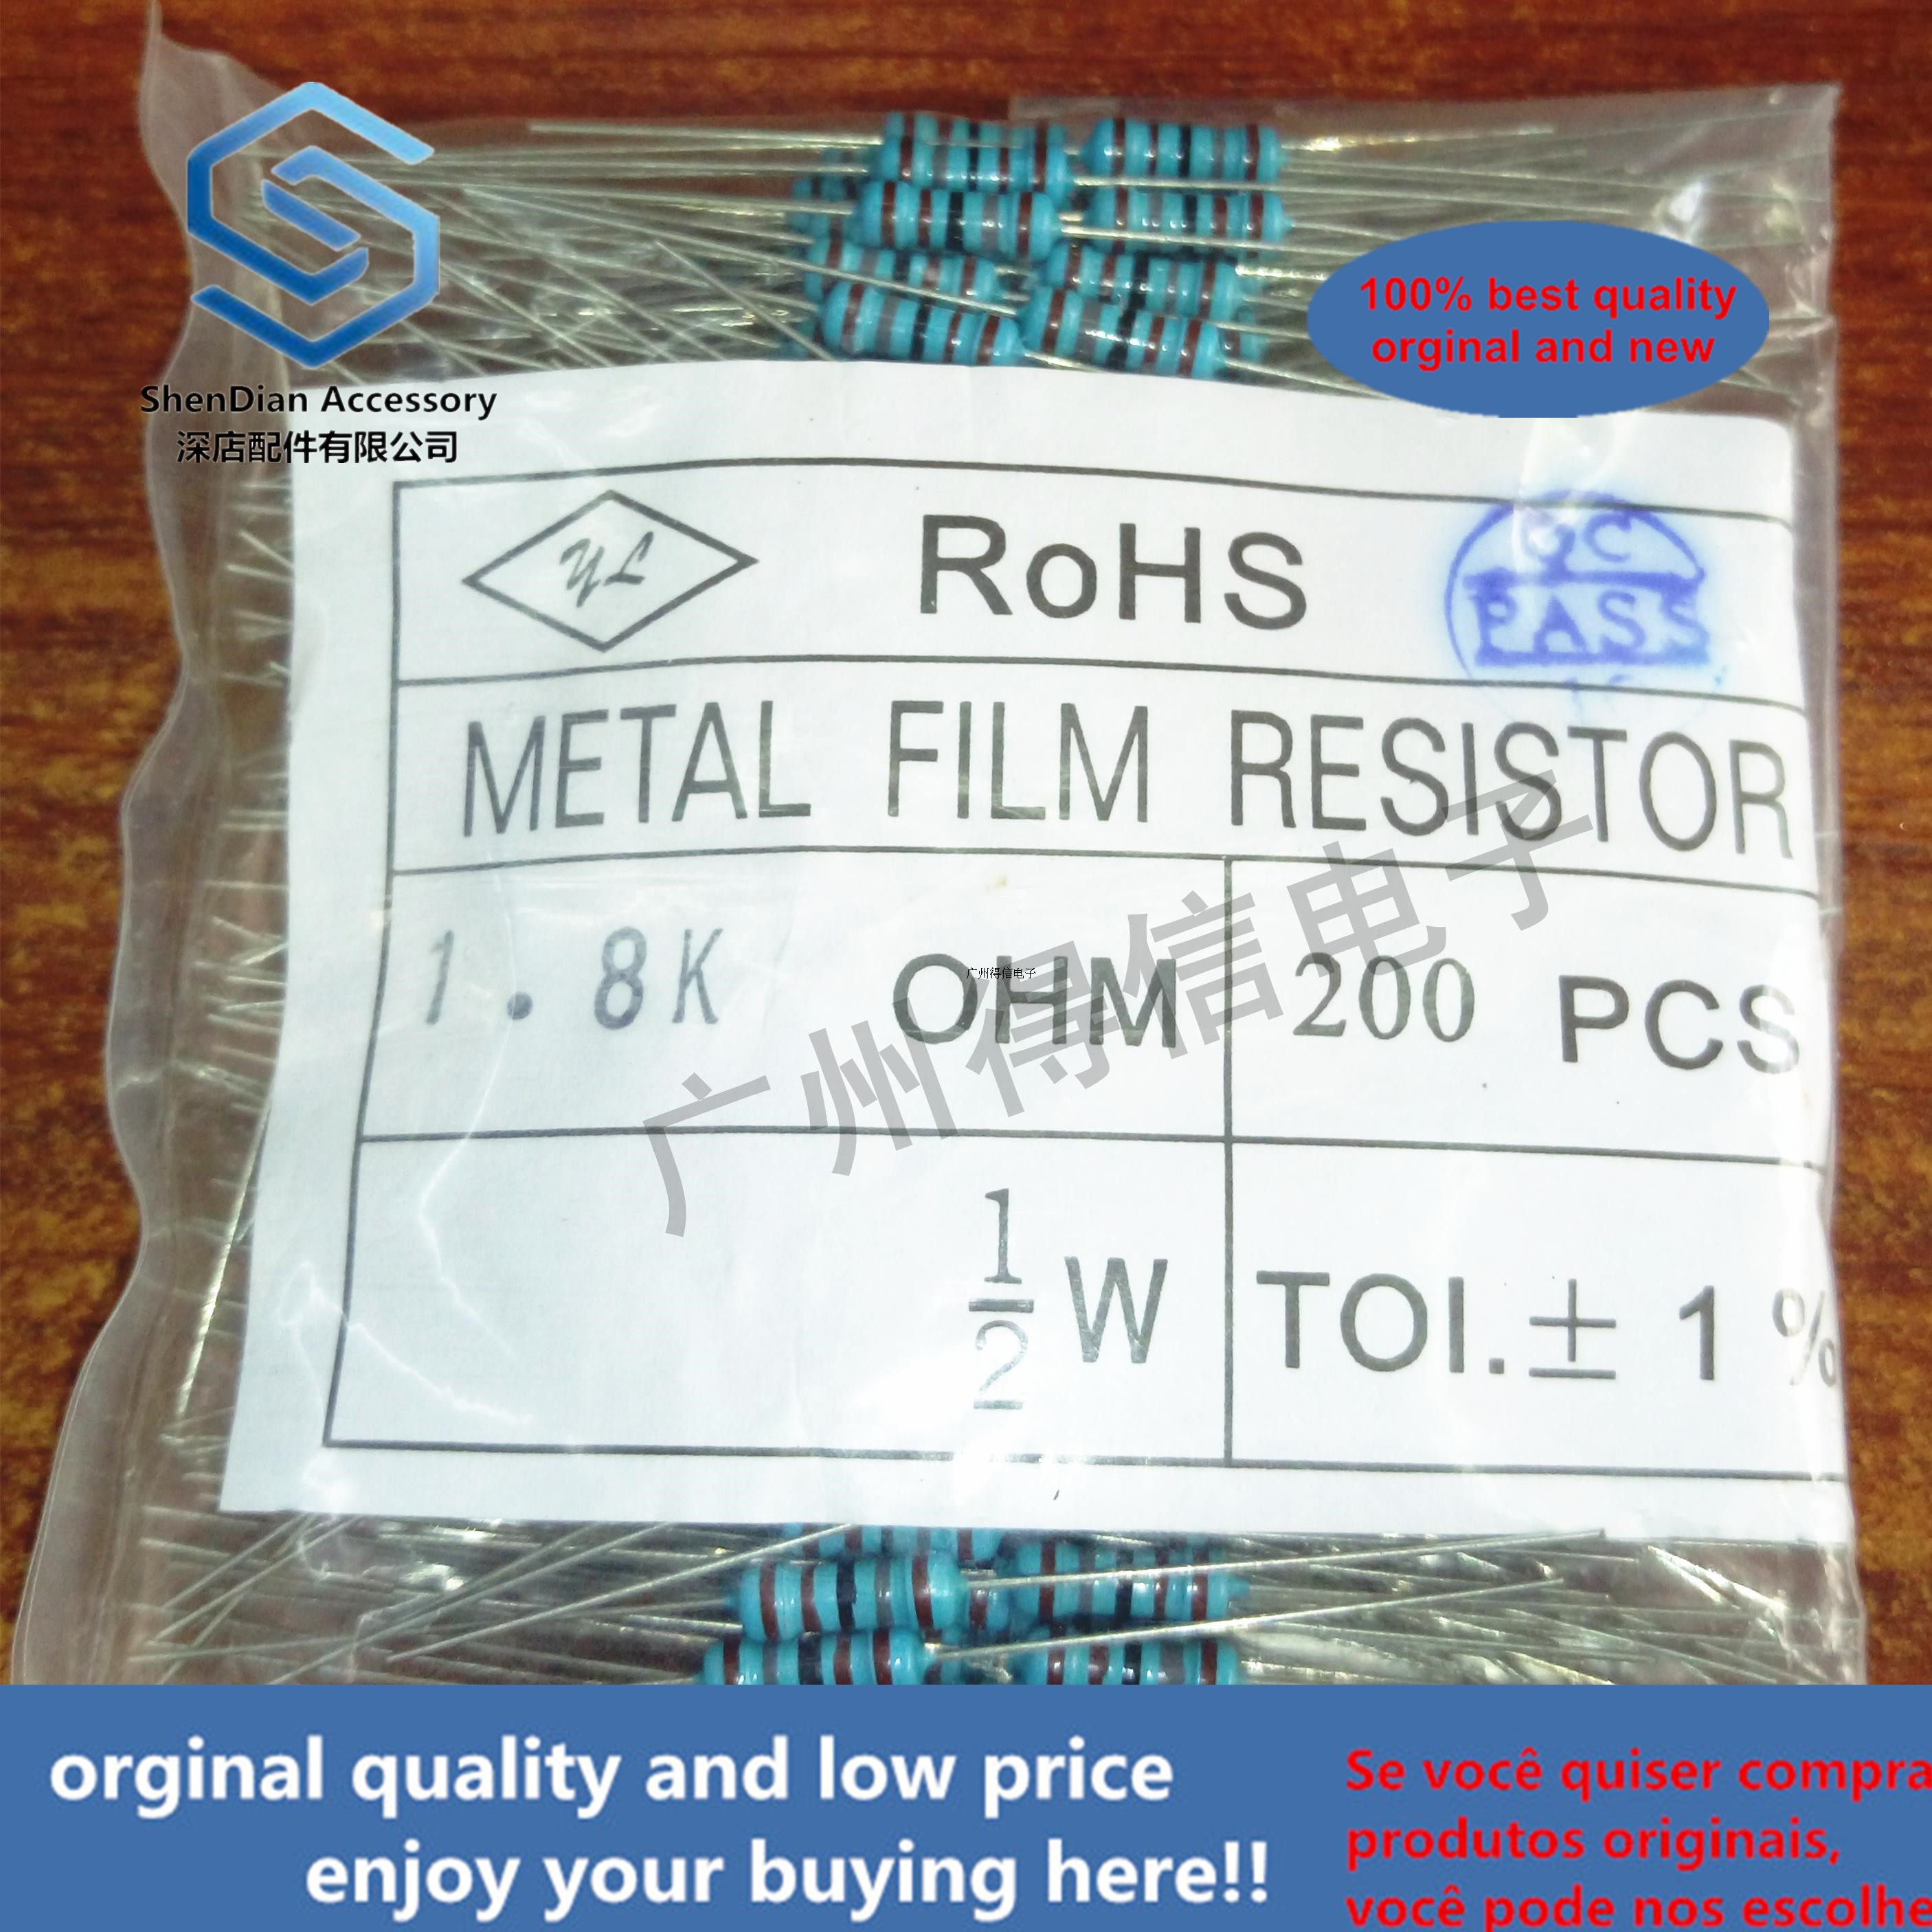 200pcs 1 / 2W 11R 11 Euro 1% Brand New Metal Film Iron Feet Resistor Bag 200 Pcs Per Pack